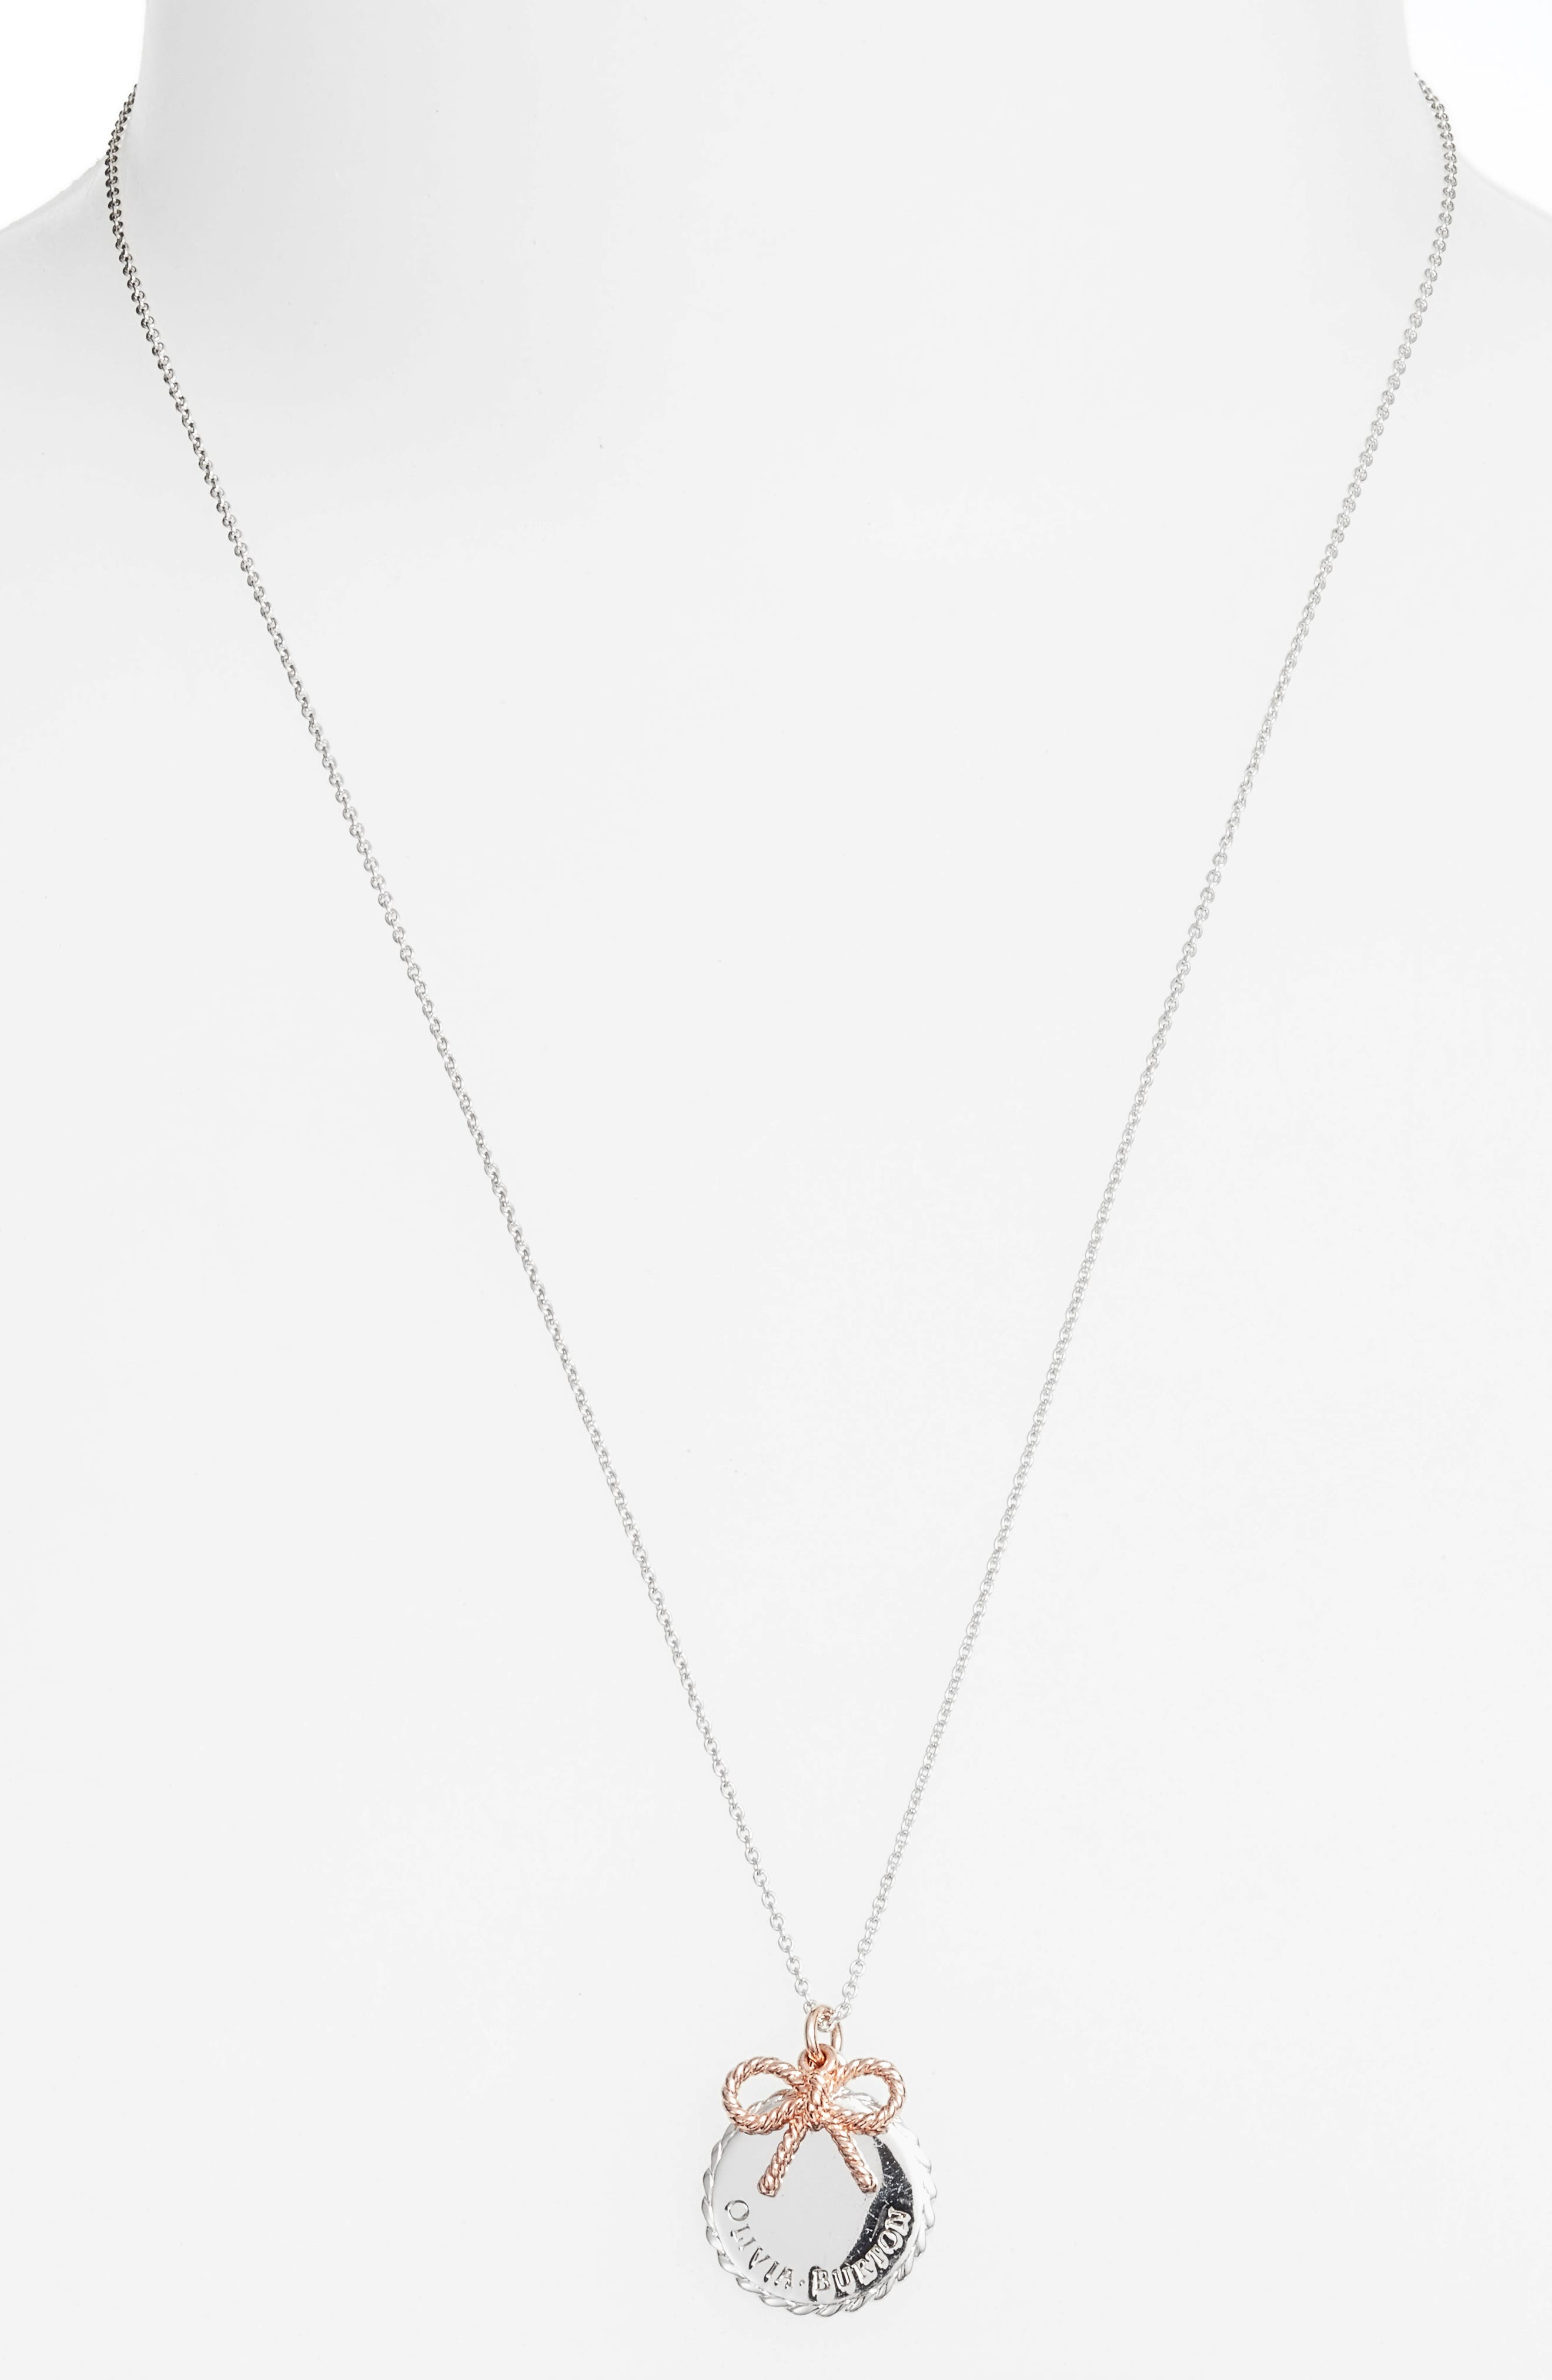 Coin & Bow Pendant Necklace,                             Alternate thumbnail 2, color,                             SILVER/ ROSE GOLD